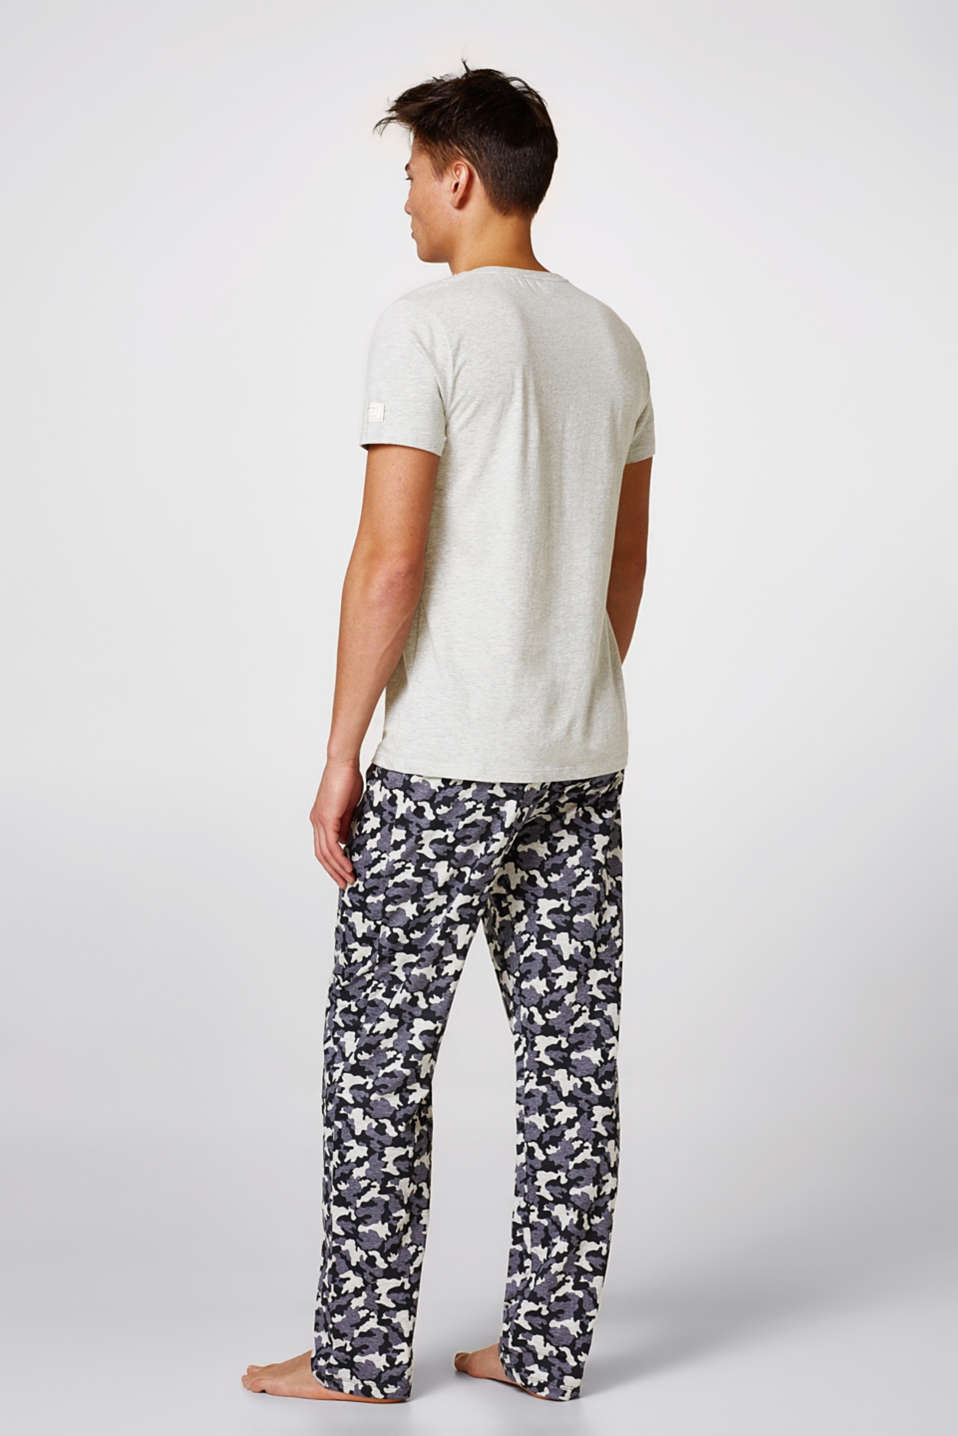 Pyjamas with printed bottoms, blended cotton